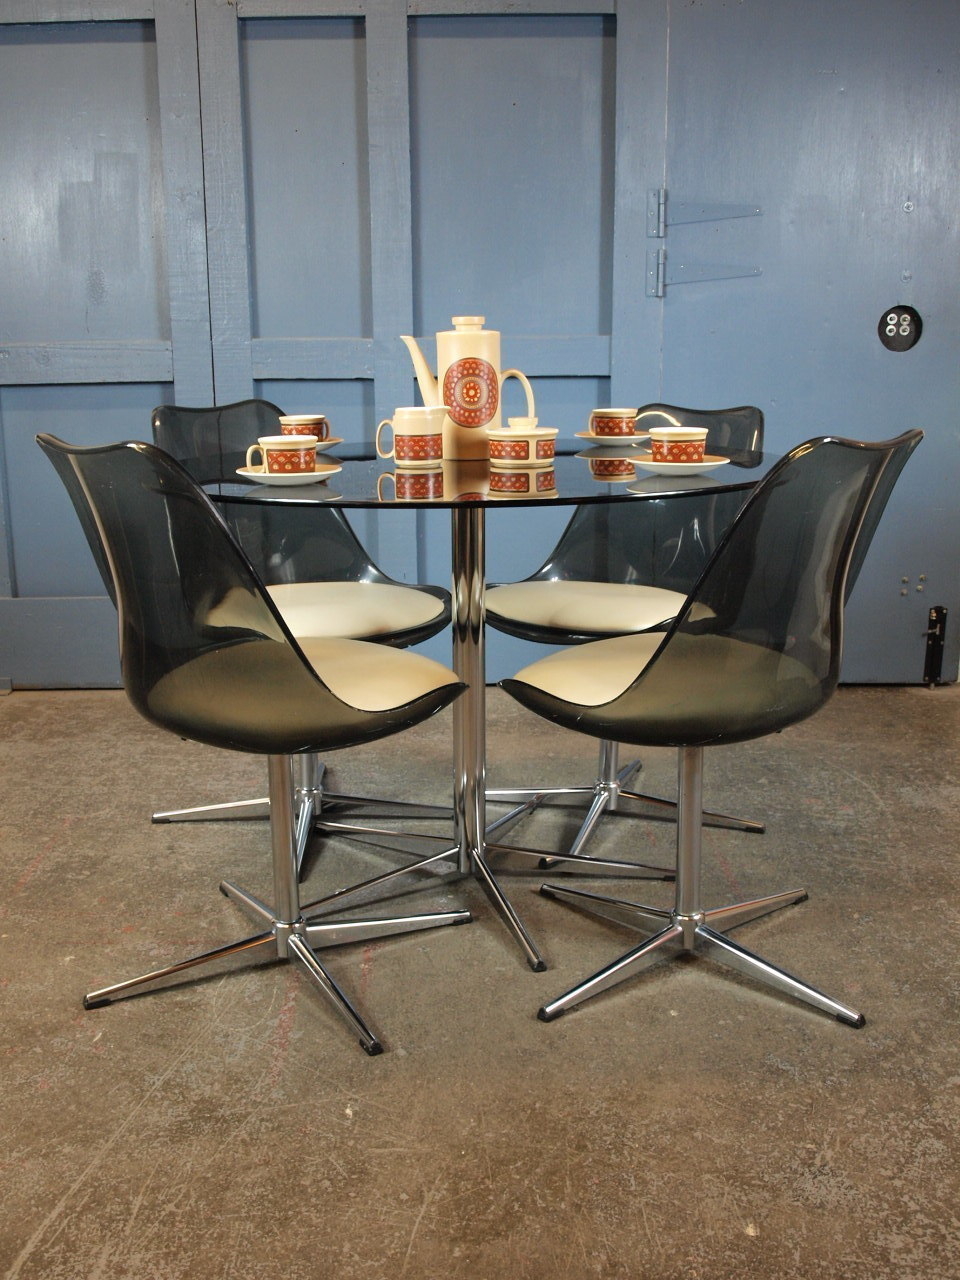 Sensational Mid Century Vintage 1960S 70S Round Glass And Chrome Dining Table And Four Tulip Swivel Chairs Short Links Chair Design For Home Short Linksinfo